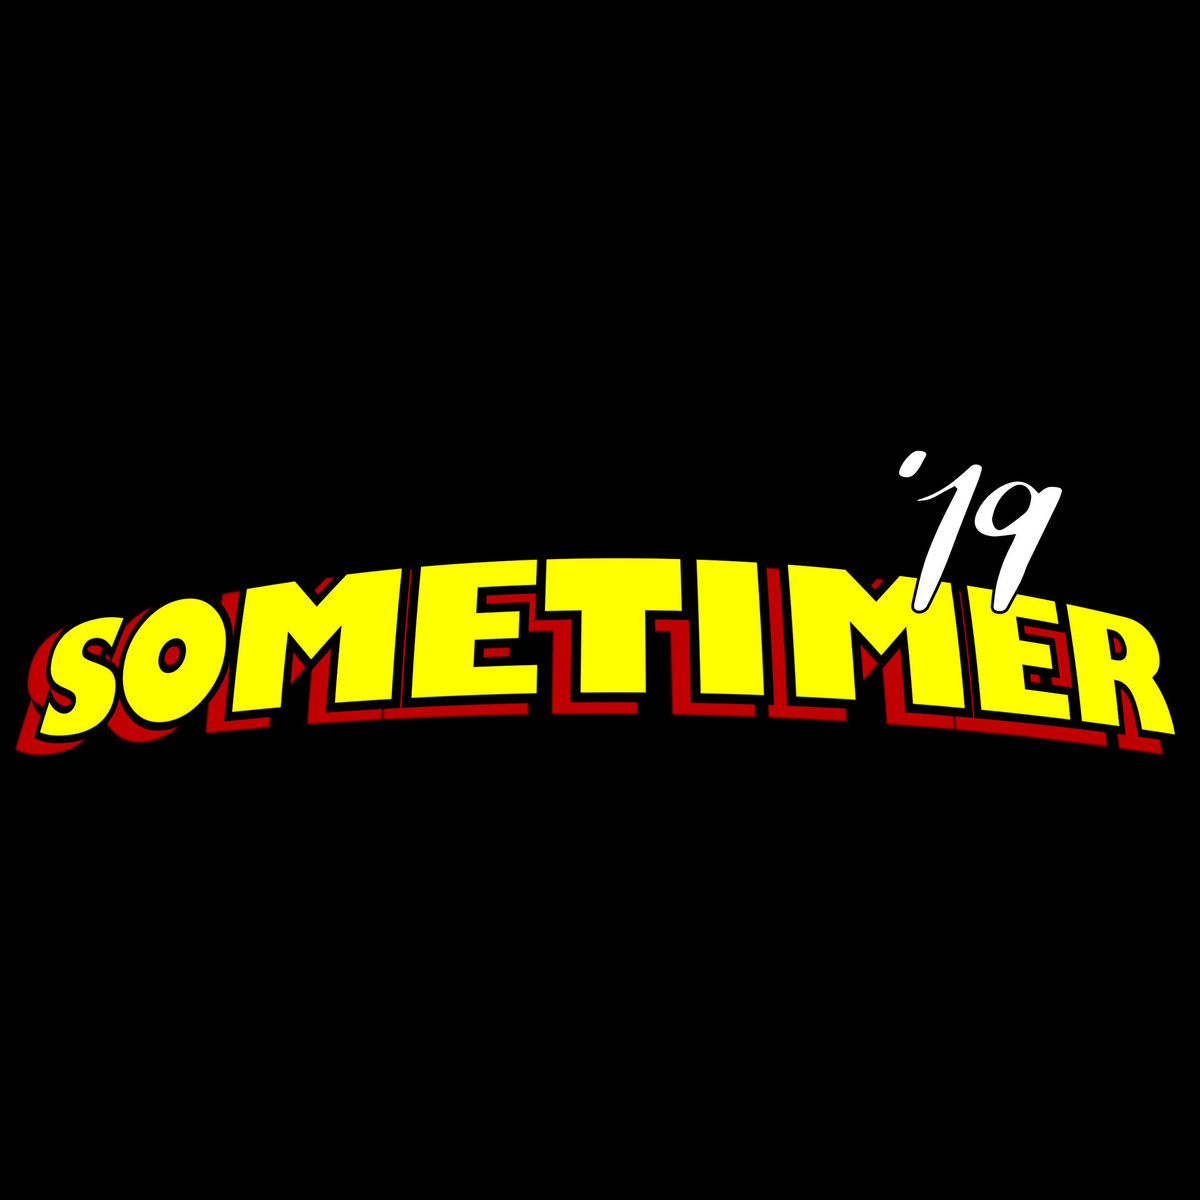 Sometimer 19 by Rise Bailey Rise